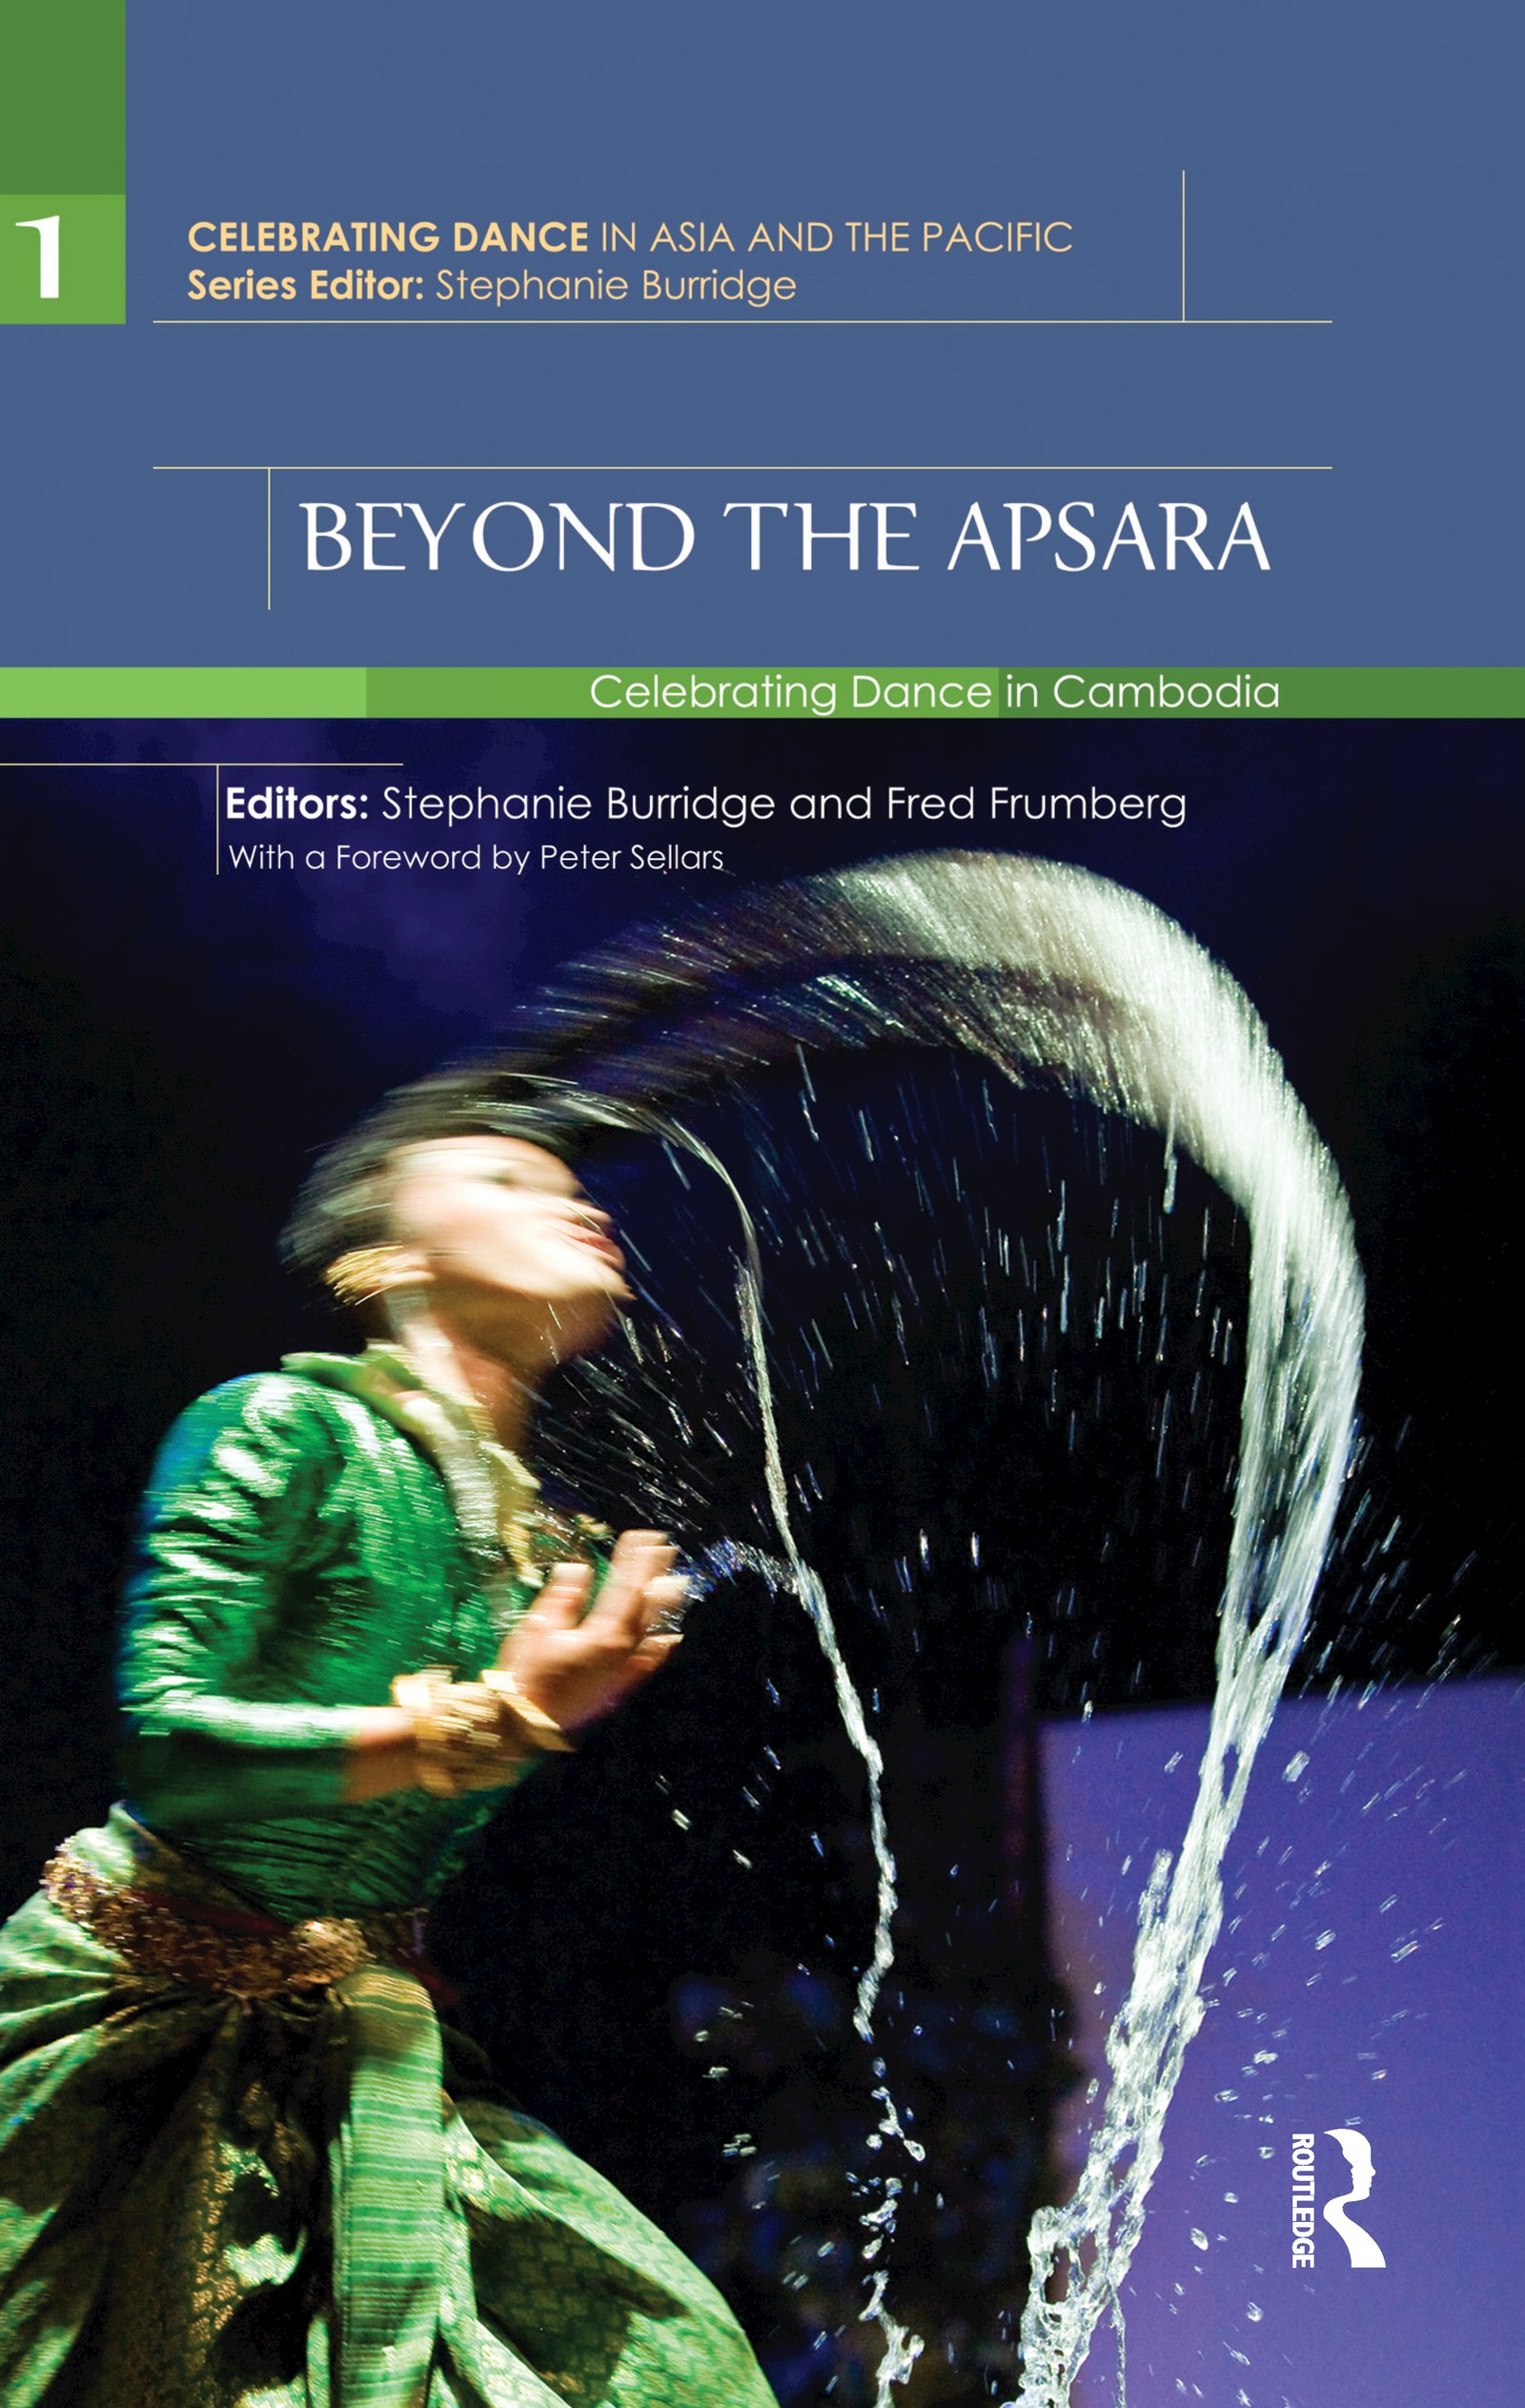 Beyond the Apsara